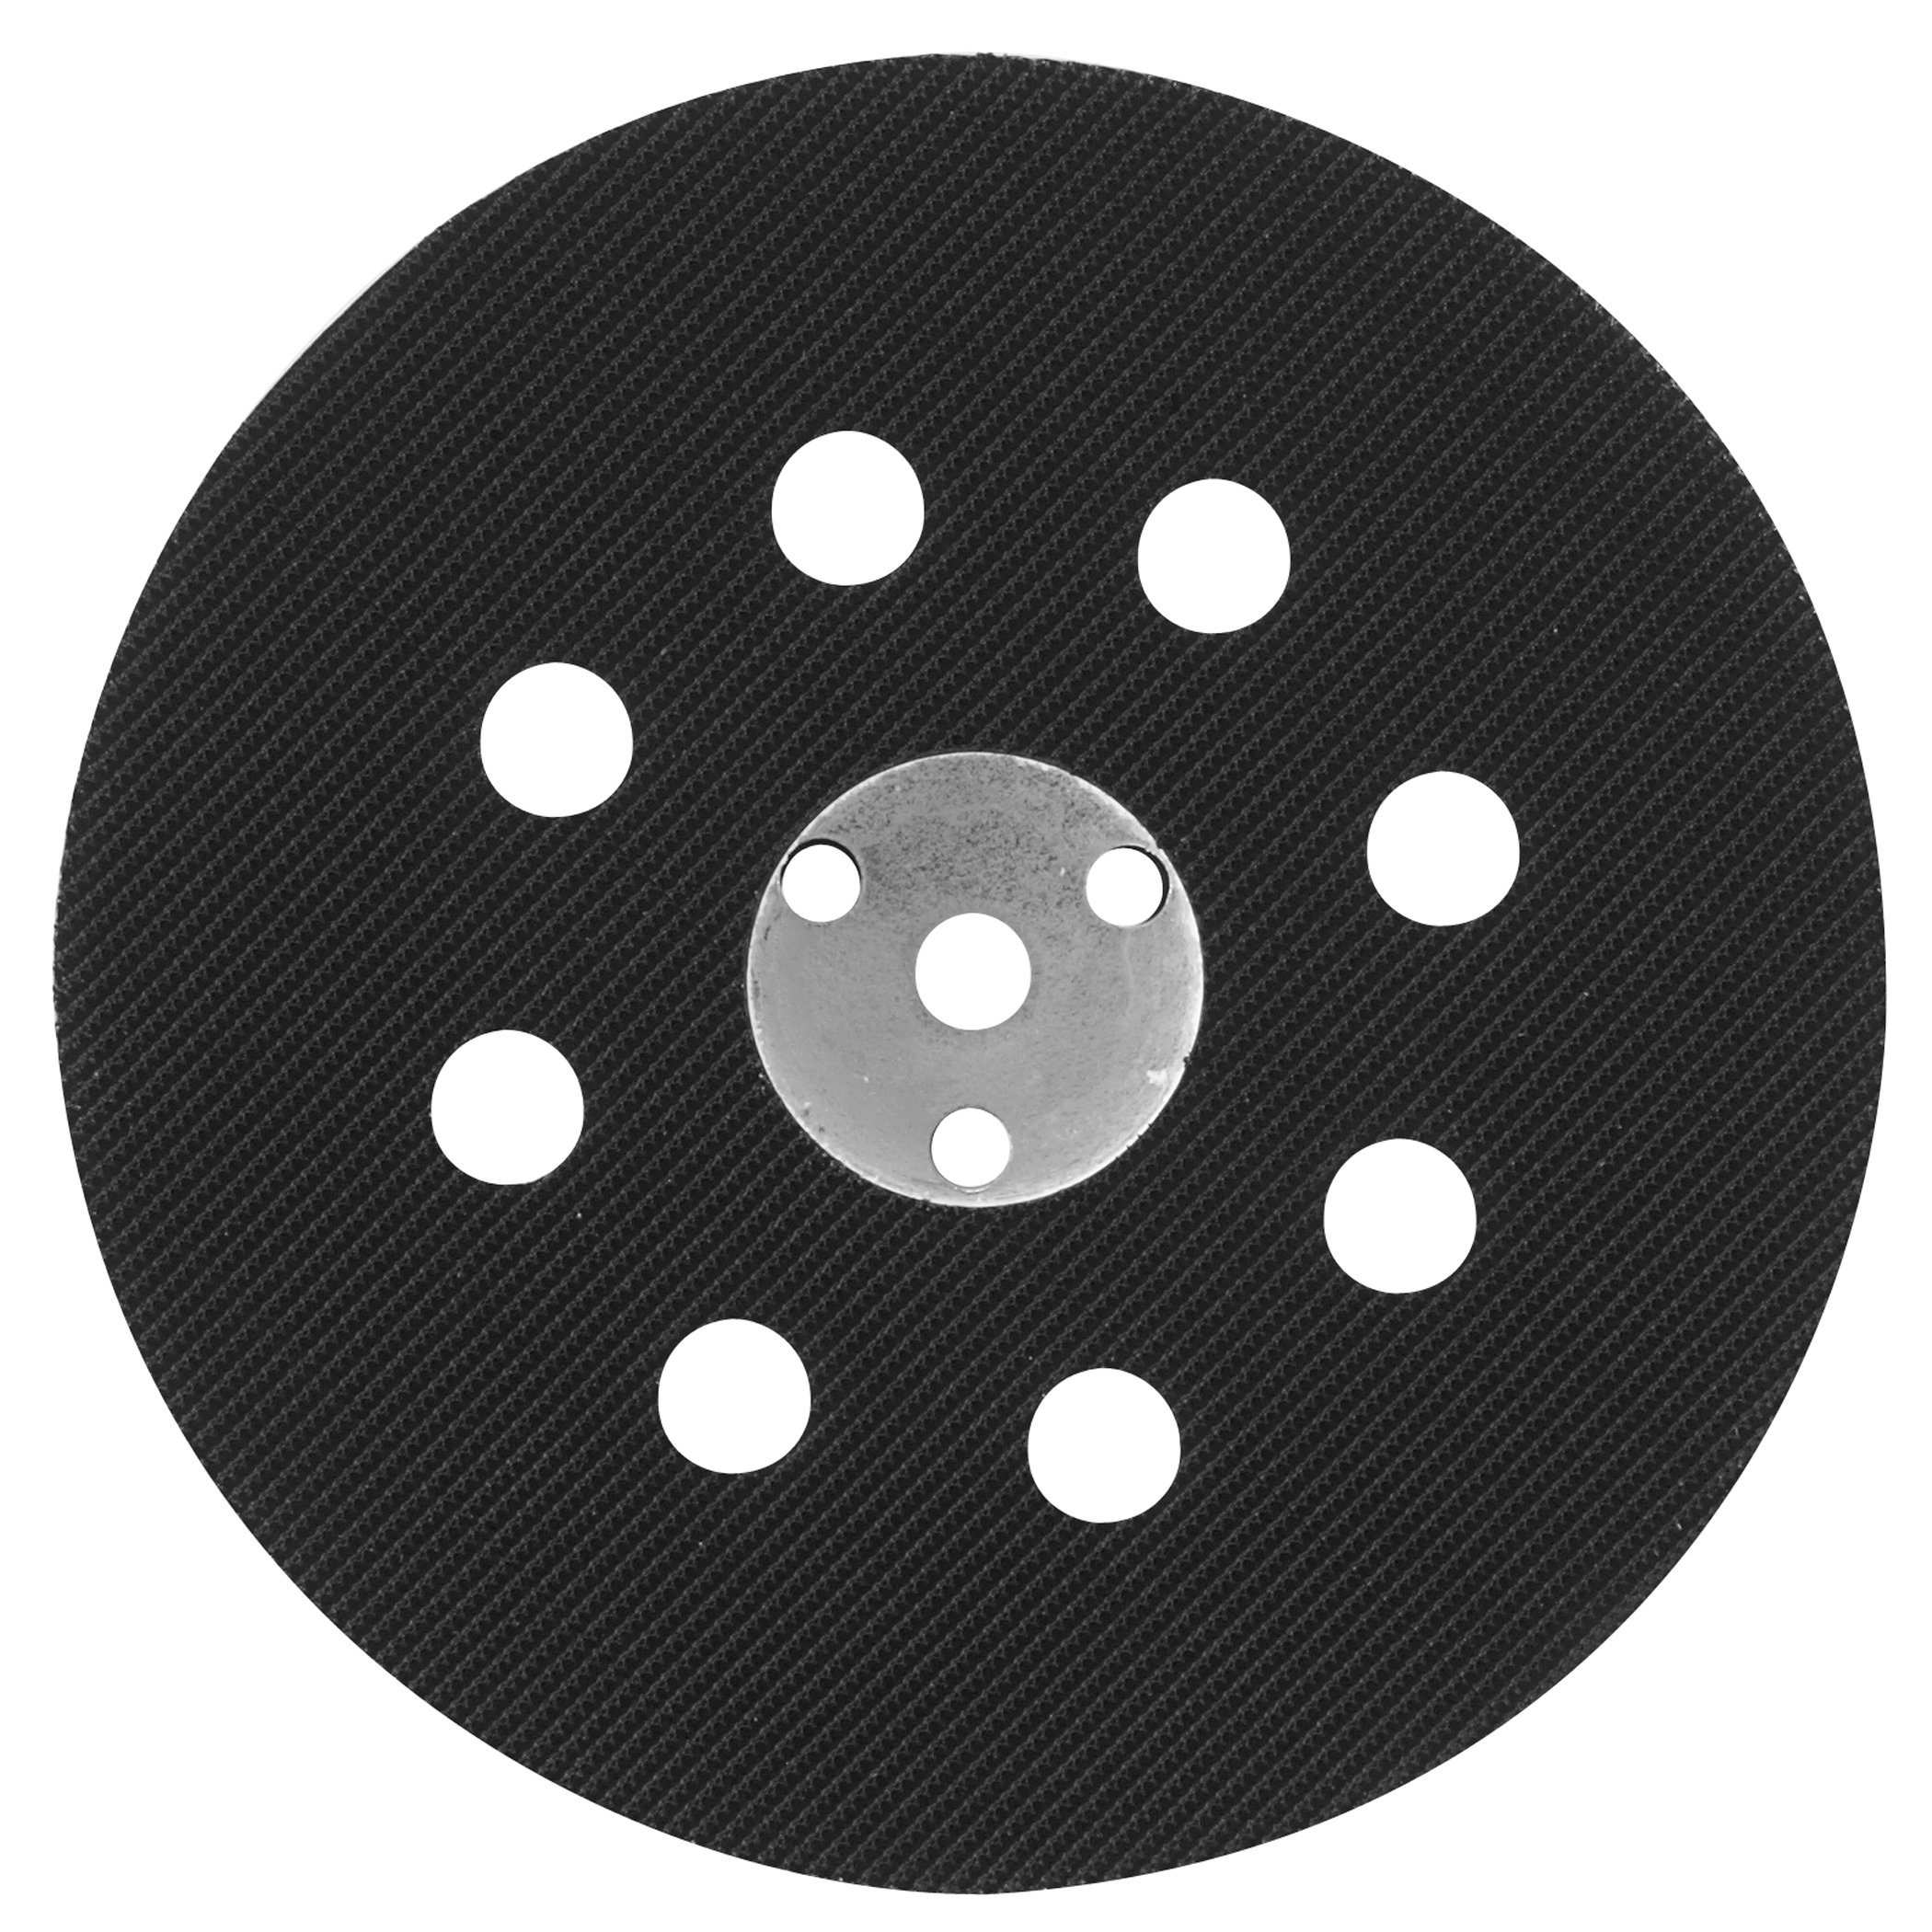 Bosch RS032 8-hole Hook & Loop Hard Backing Pad